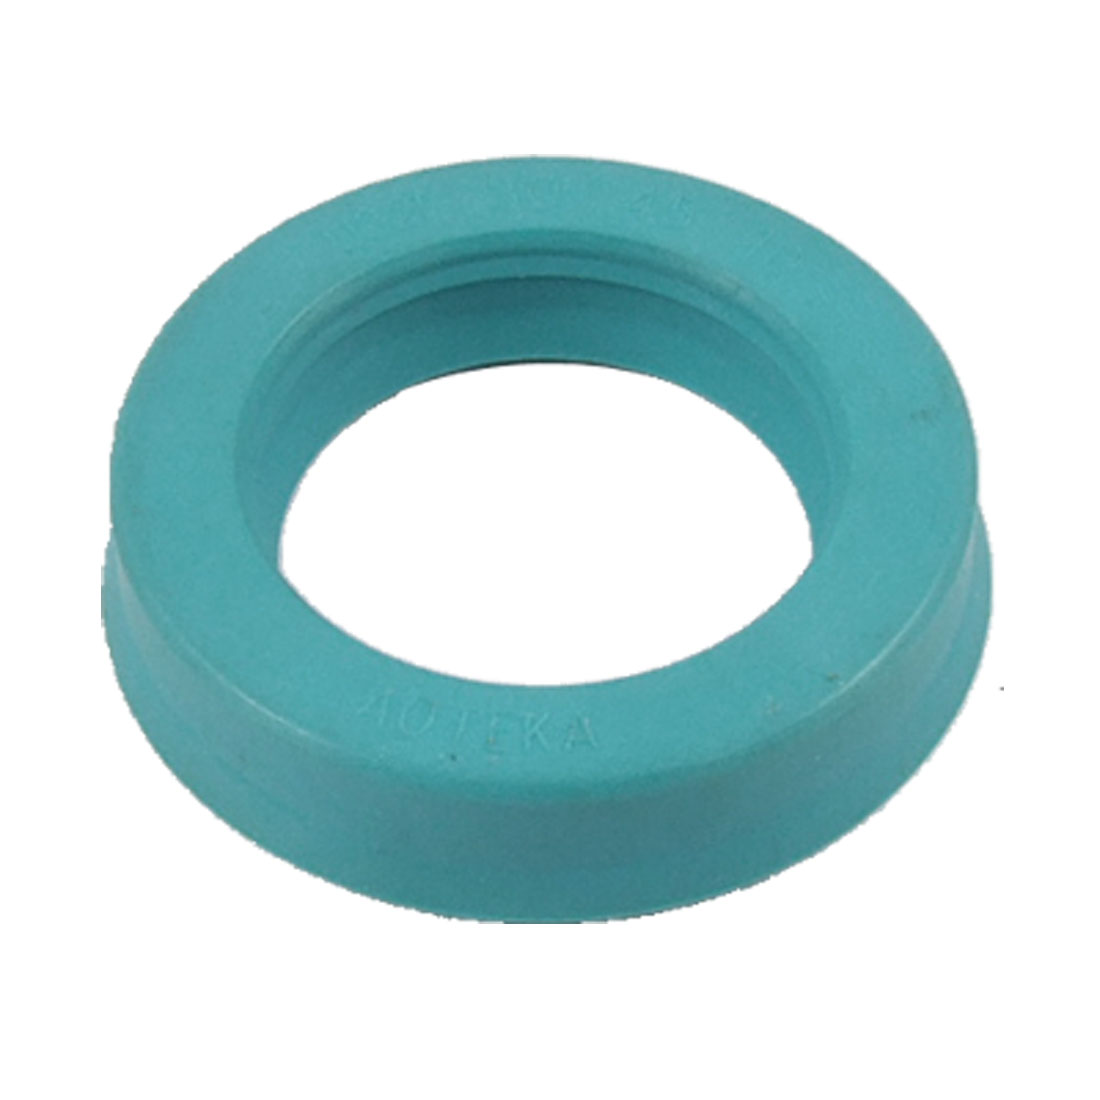 30mm x 45mm x 10mm Hydraulic Cylinder Metric Single Lip U Cup PU Oil Seal U32i